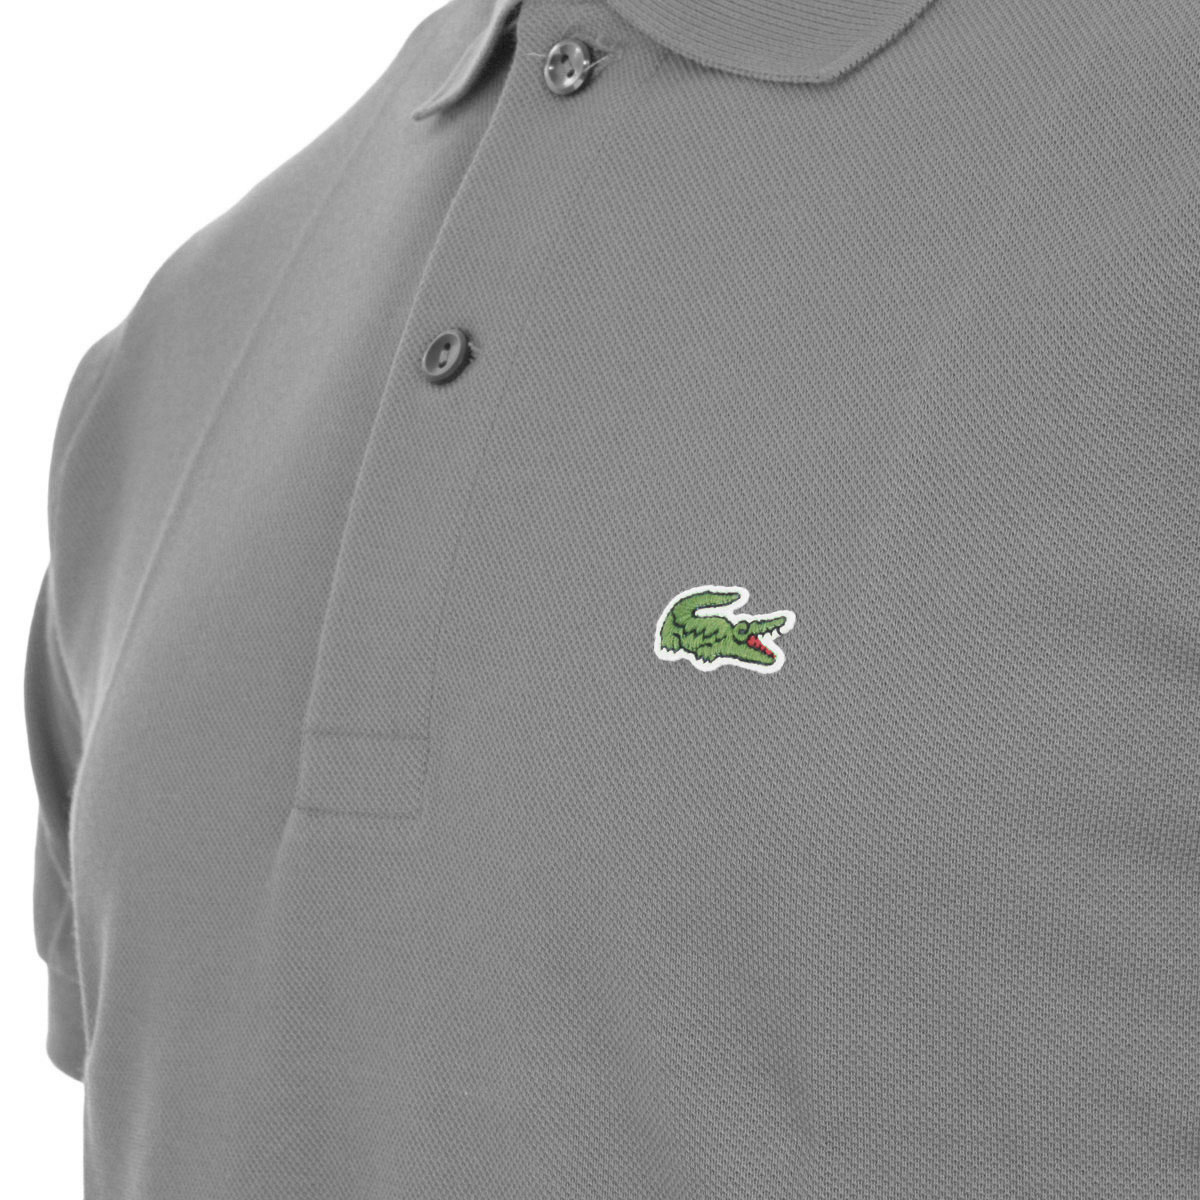 Lacoste-Mens-Classic-Cotton-L1212-Short-Sleeve-Polo-Shirt-26-OFF-RRP thumbnail 62